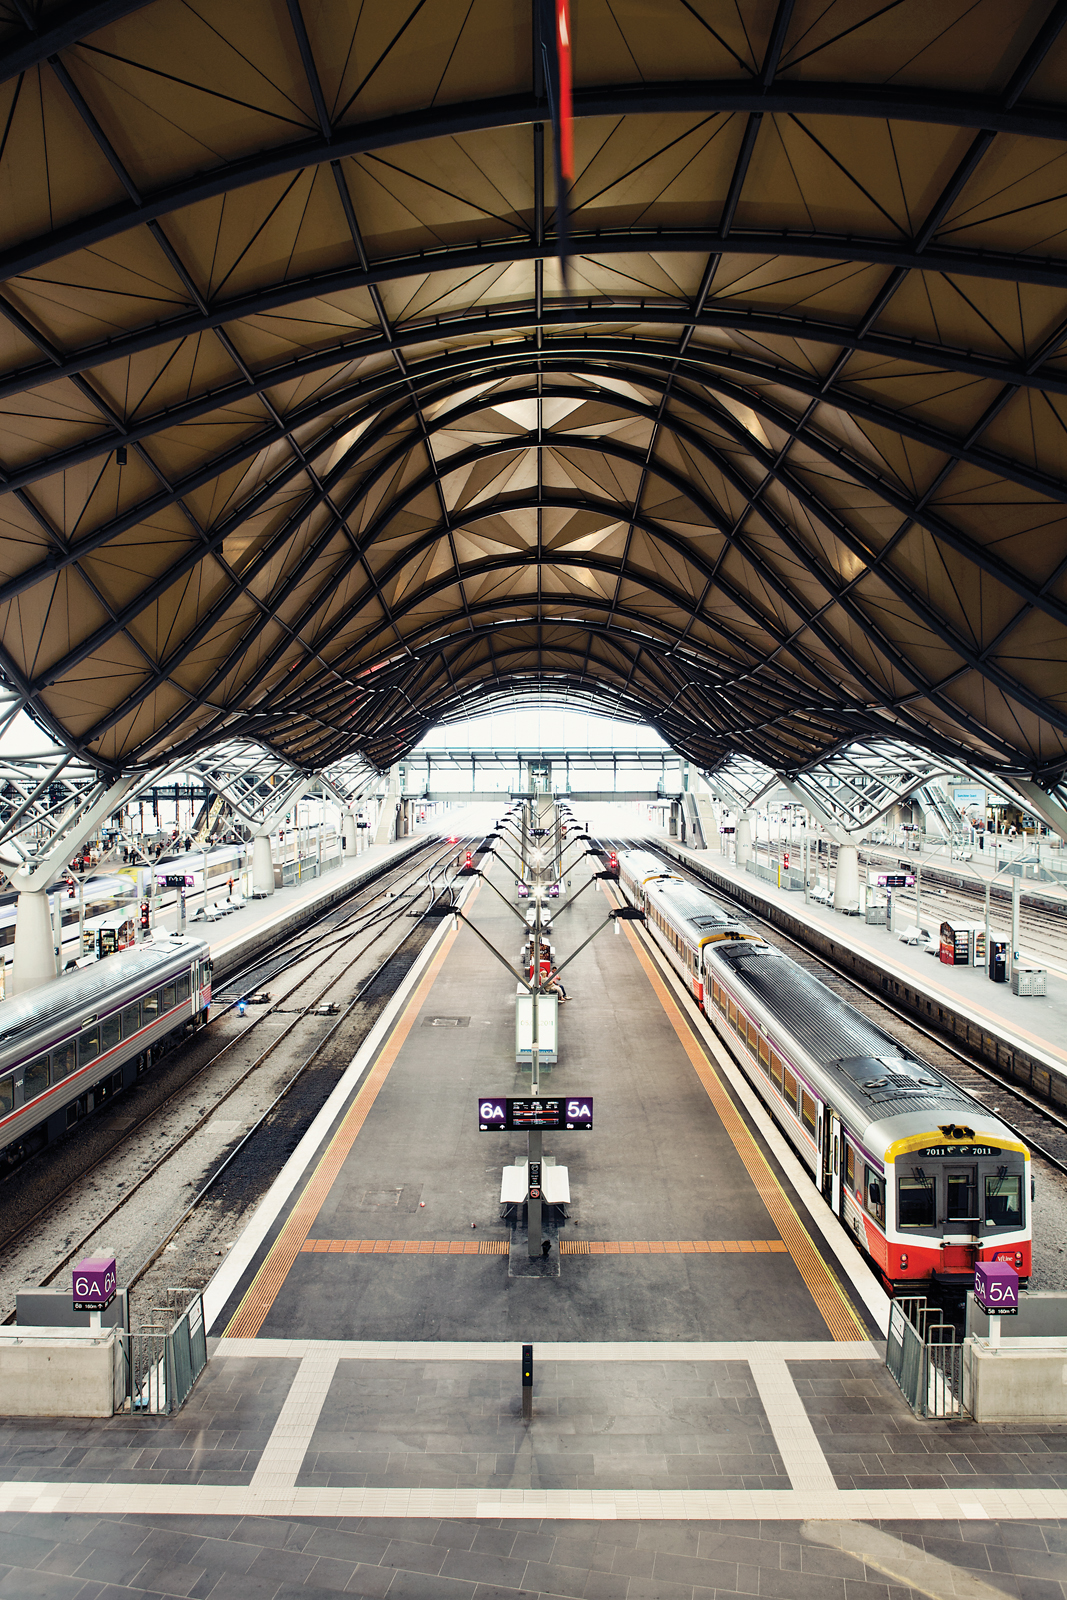 Southern Cross Station designed by Grimshaw Architects in Melbourne, Australia